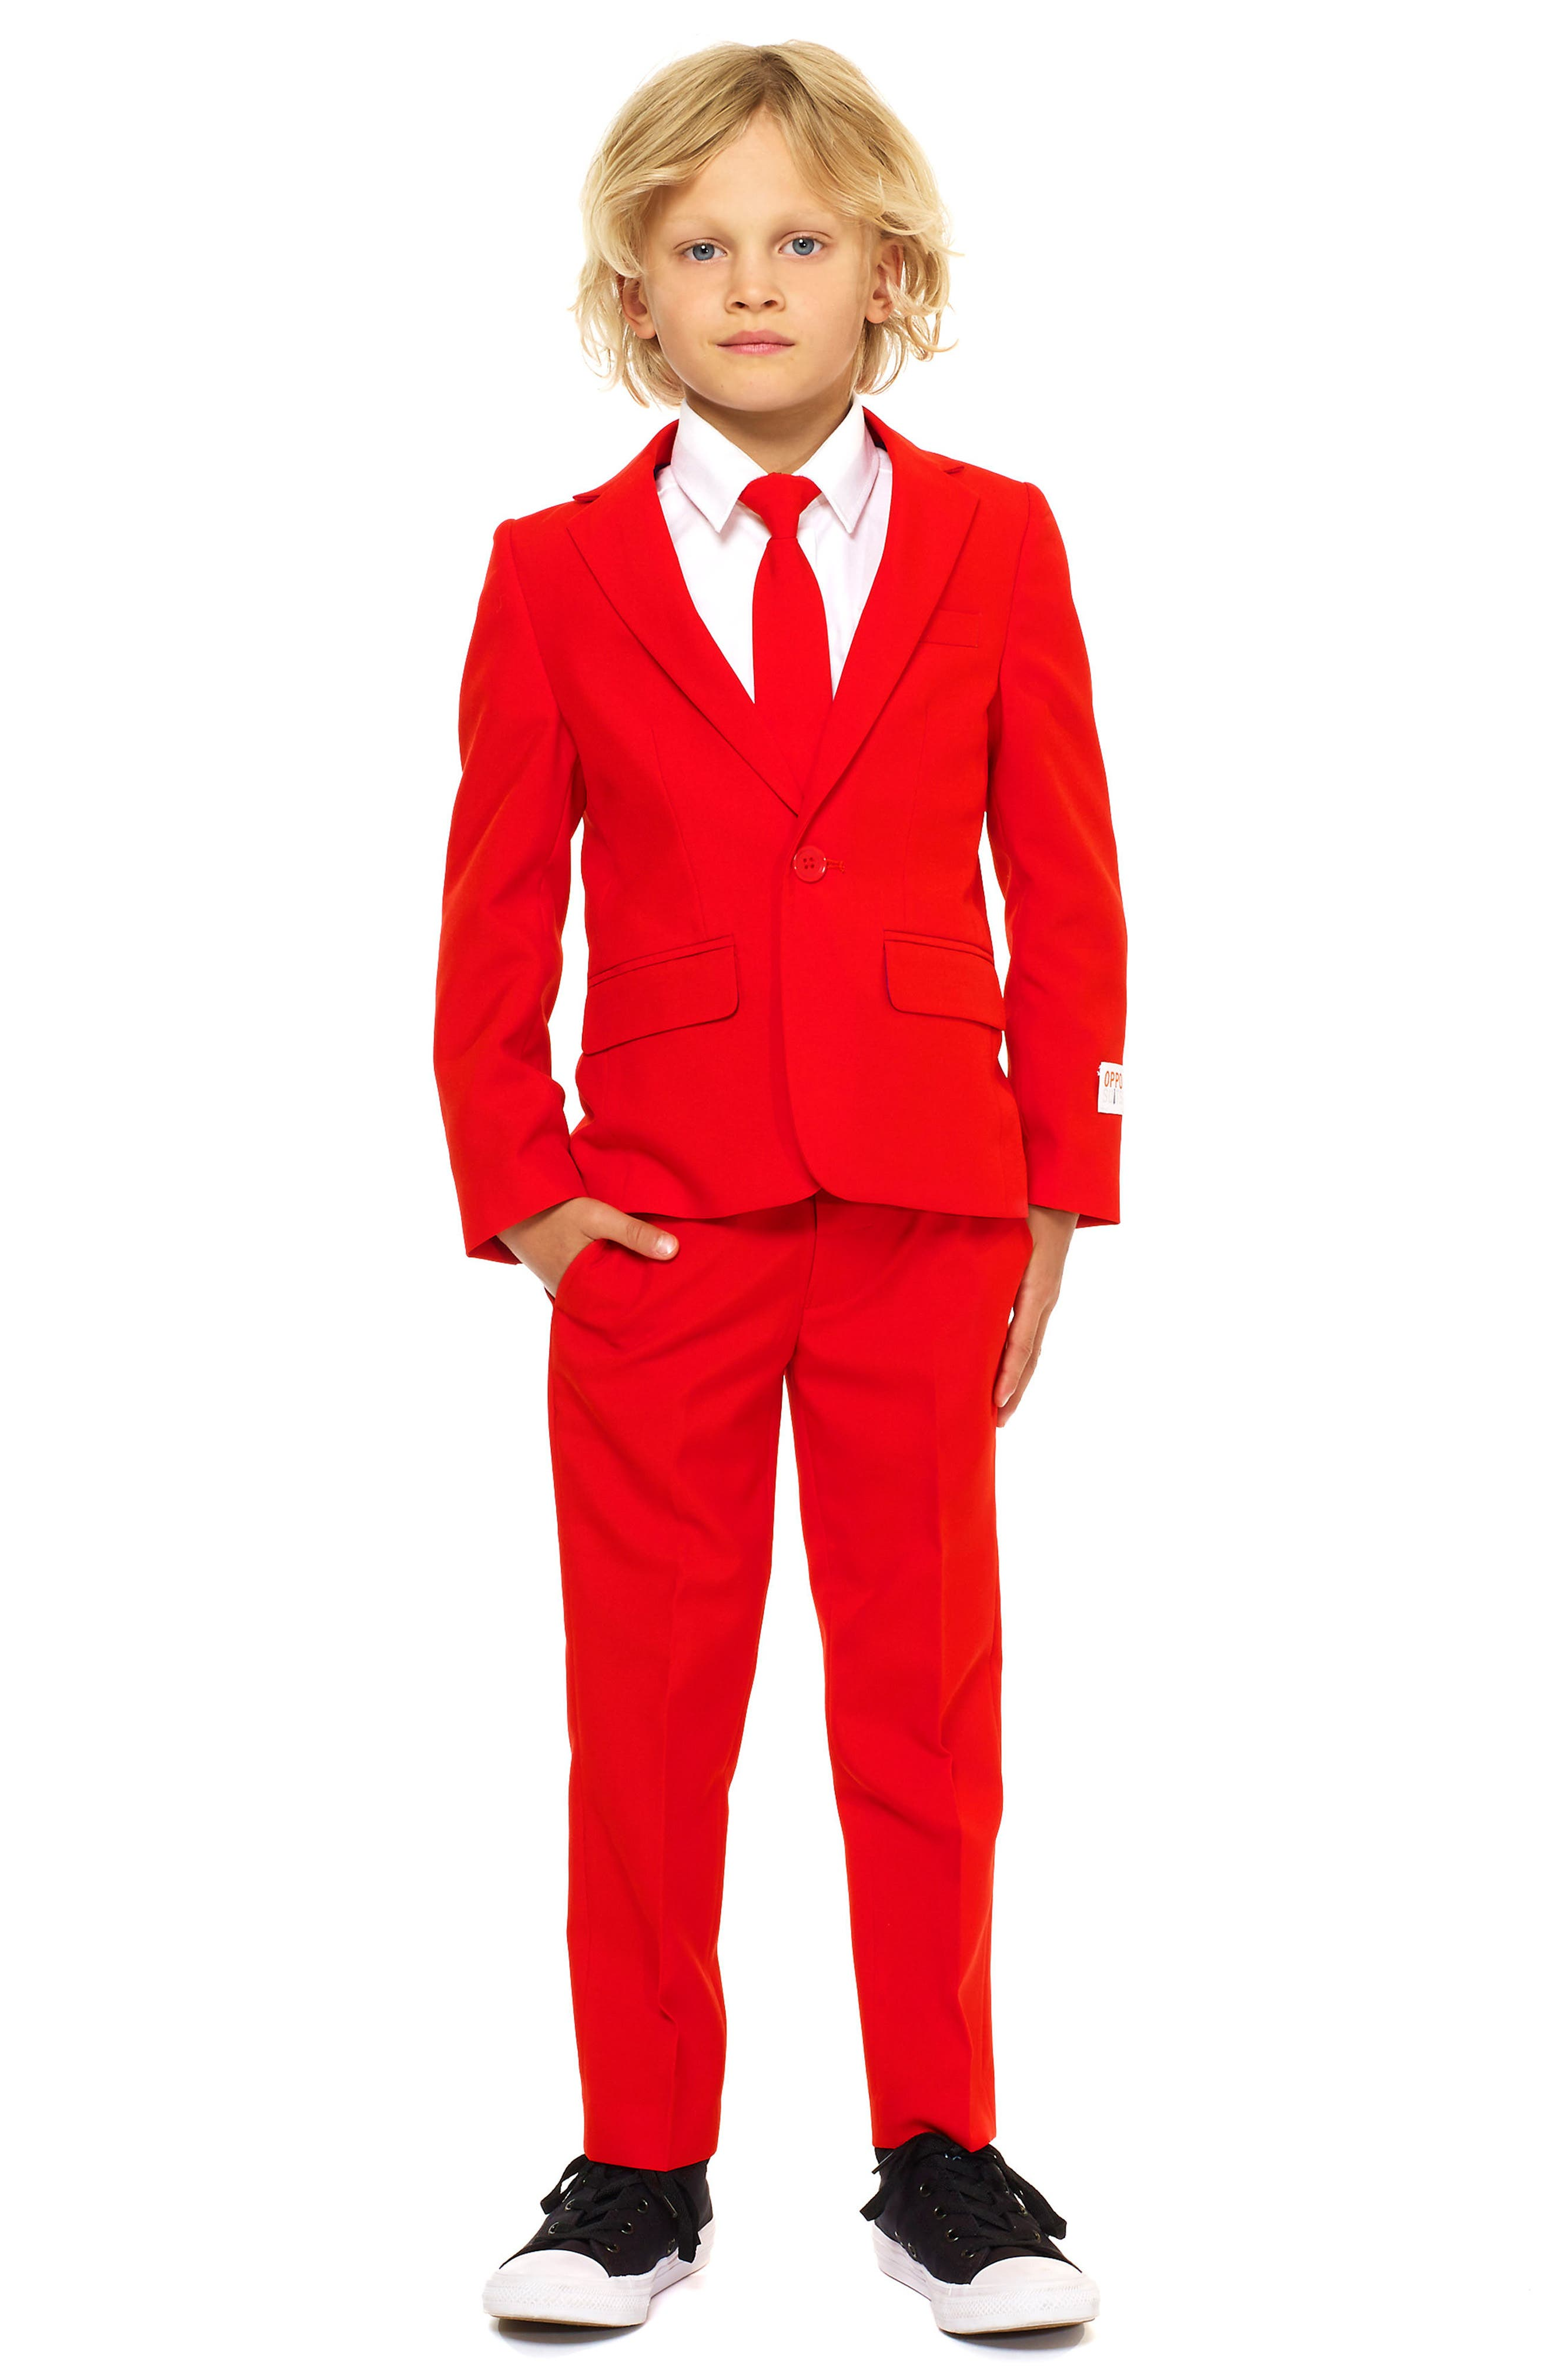 Oppo Red Devil Two-Piece Suit with Tie (Toddler Boys, Little Boys & Big Boys)